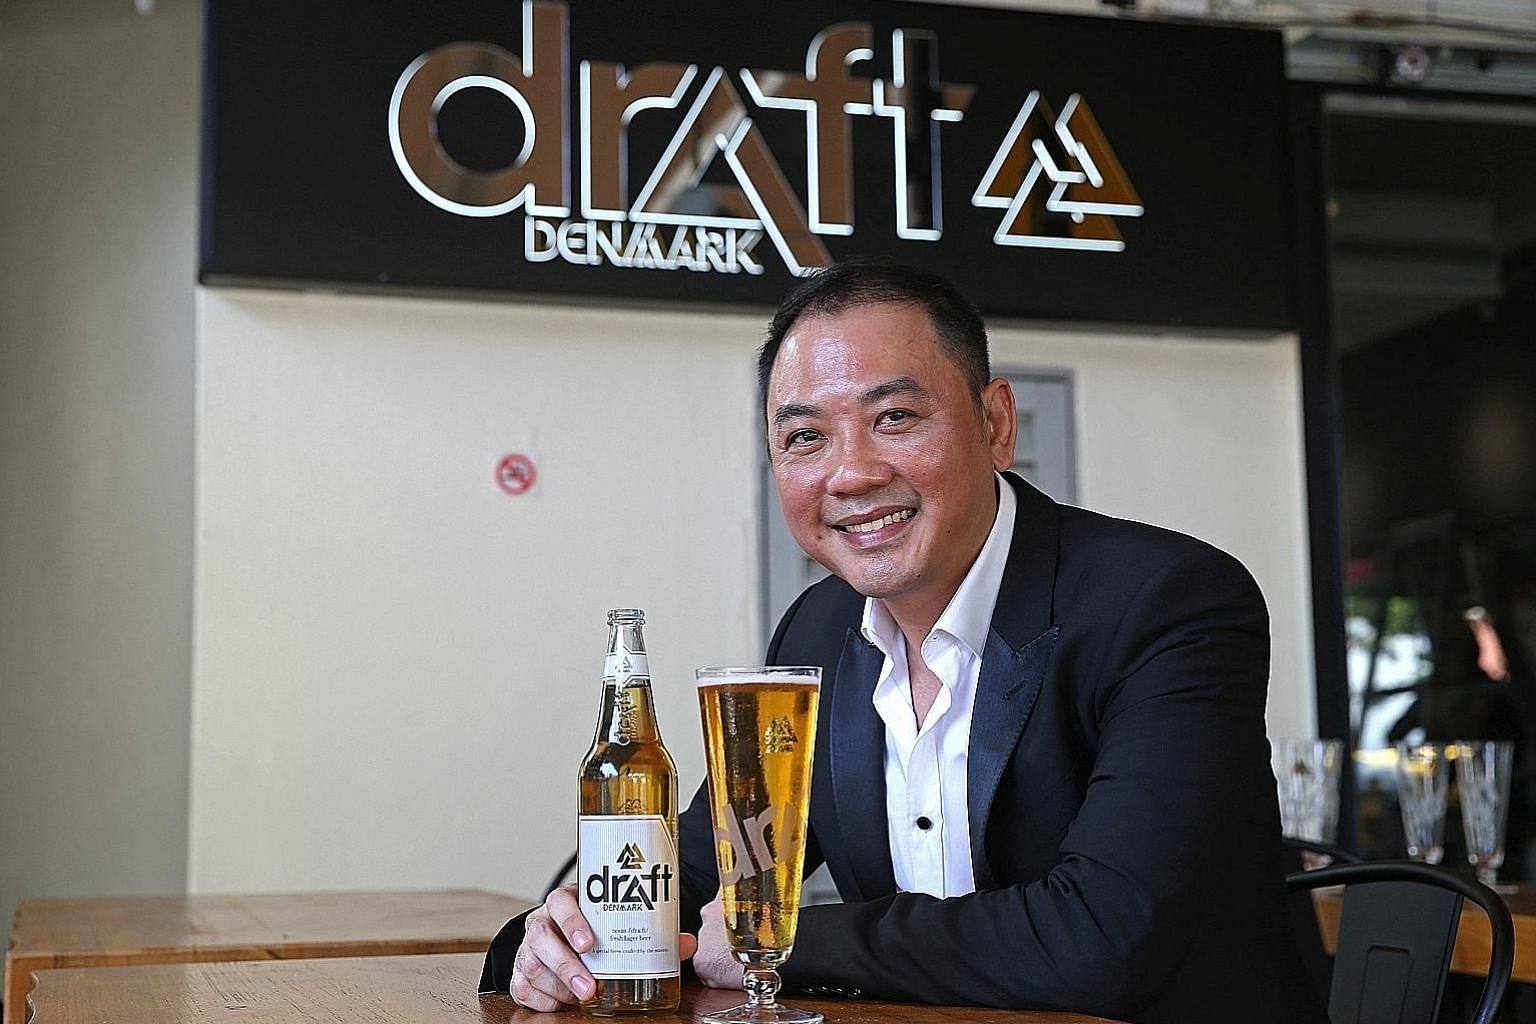 No Signboard Seafood's chief executive Sam Lim is targeting millennials with Draft Denmark.